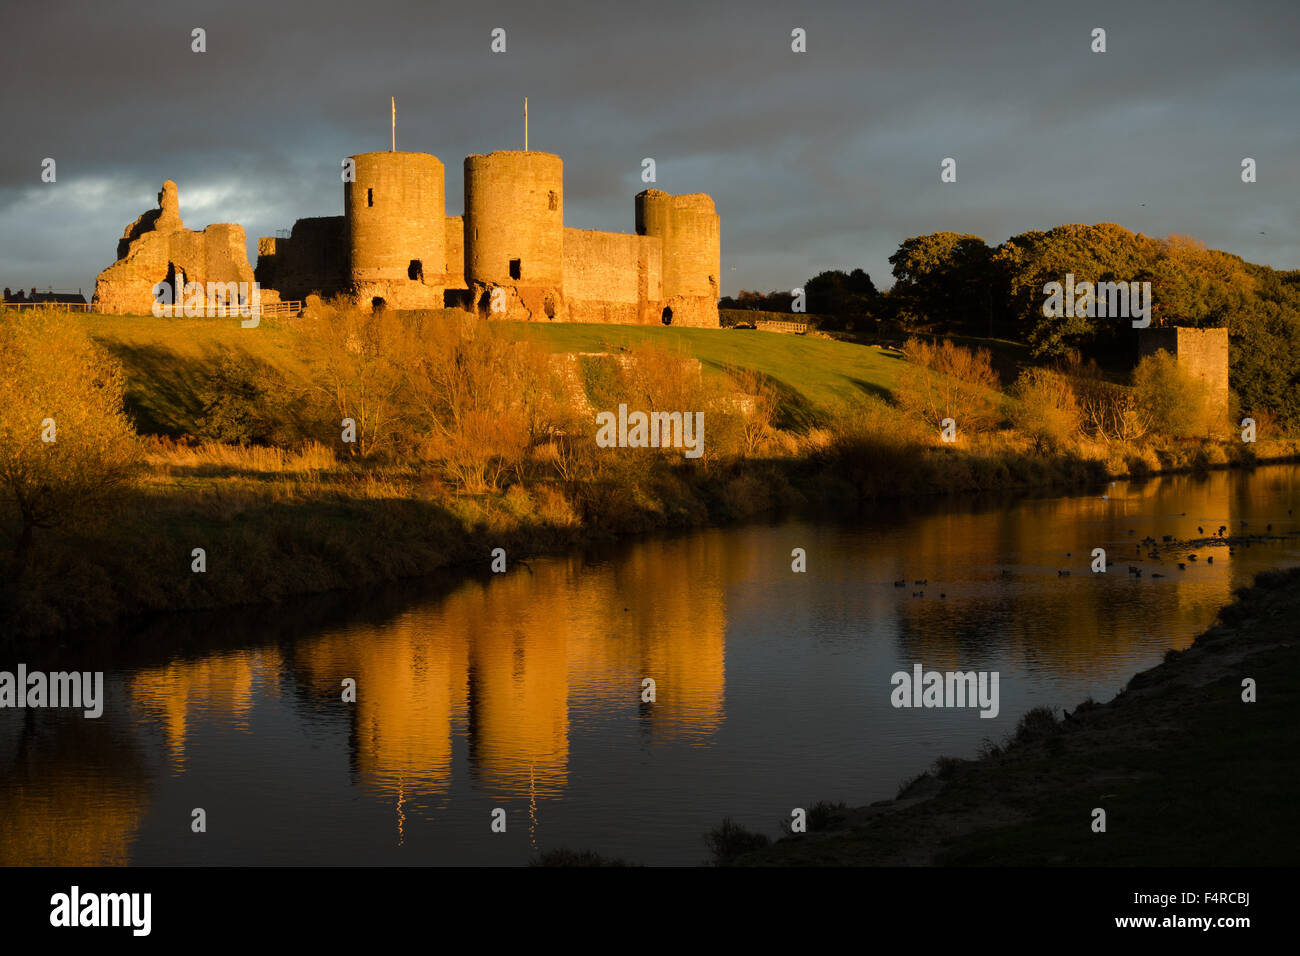 Rhuddlan castle at sunset, with storm clouds behind and reflection in the Clwyd River - Stock Image